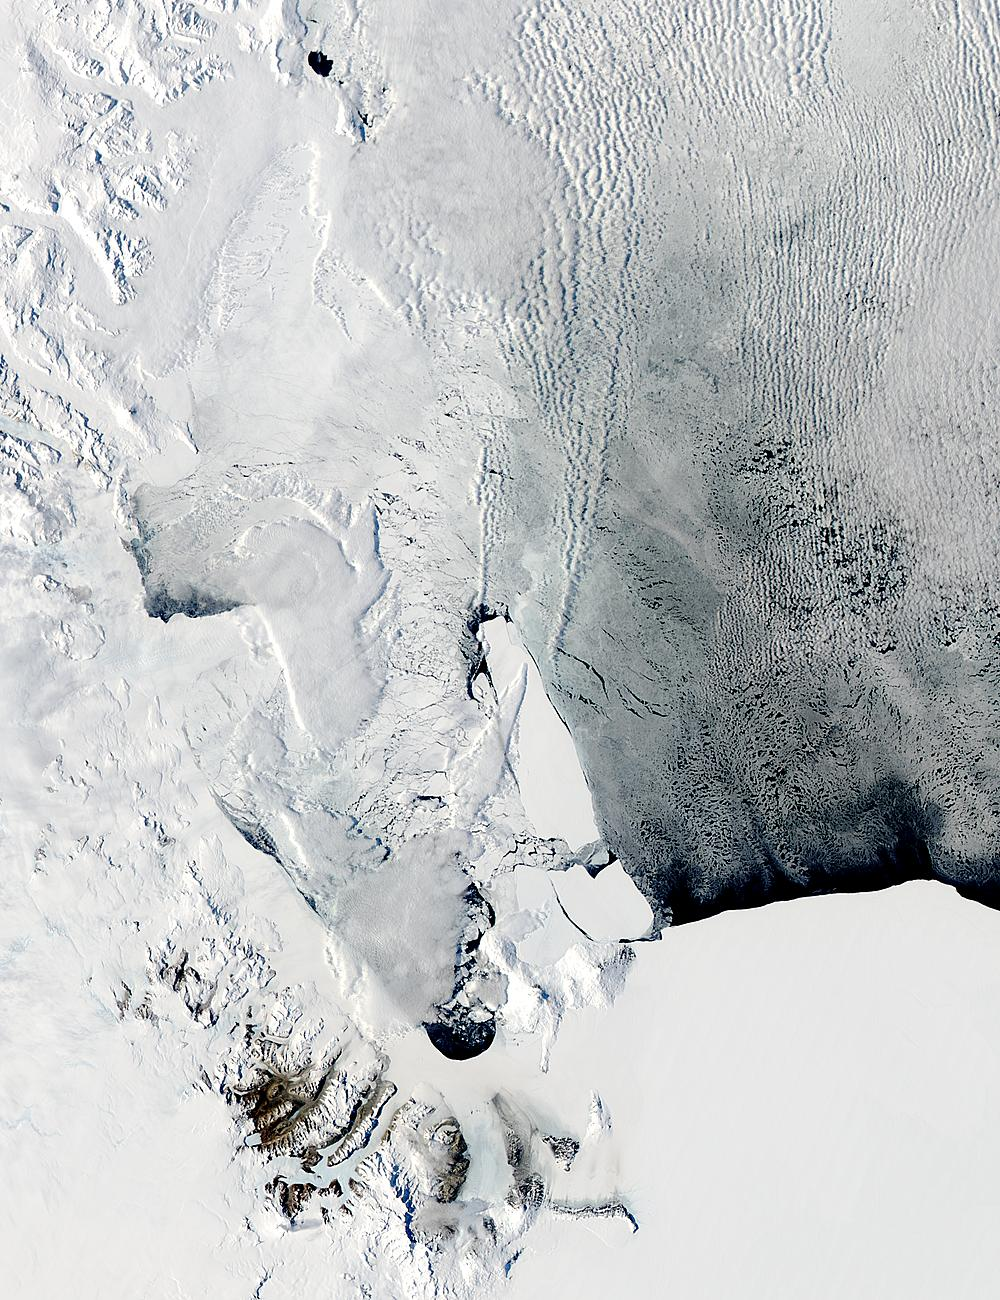 B-15A, B-15J, and C-16 icebergs in the Ross Sea, Antarctica - related image preview